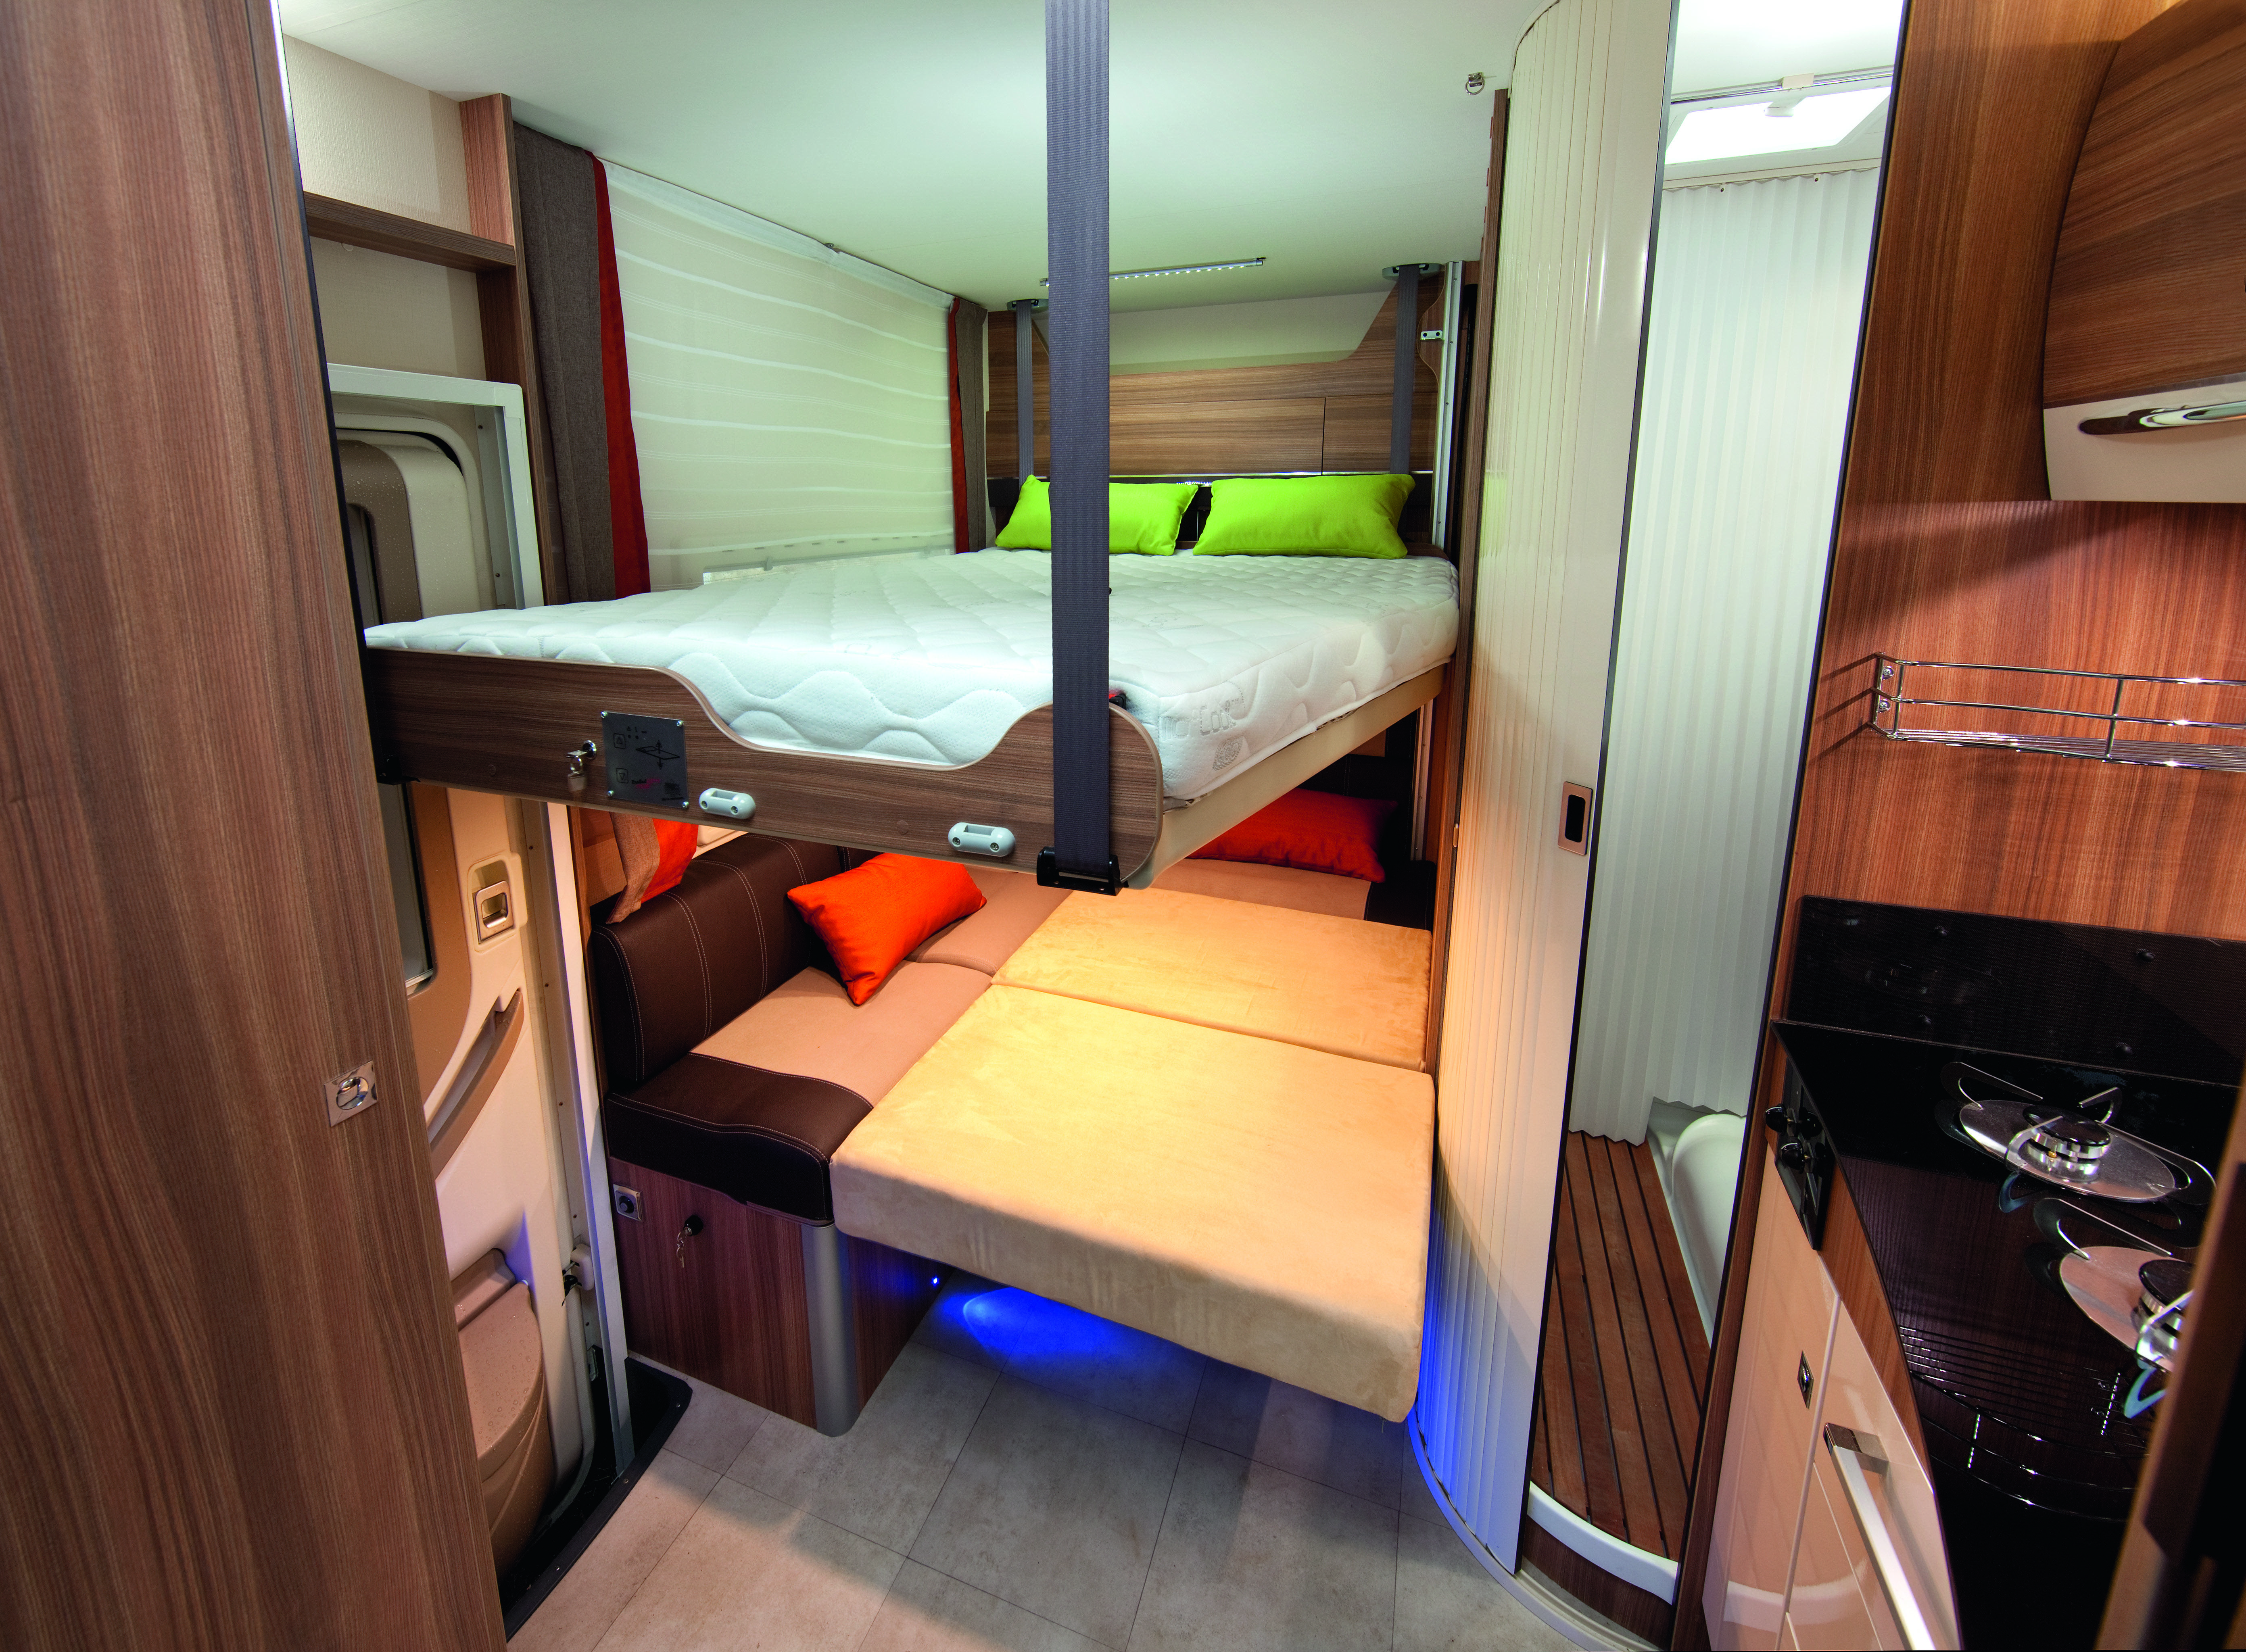 Le Lit Du Camping Car Challenger 100 The Bed Of The Challenger 100 Motorhome Http Www